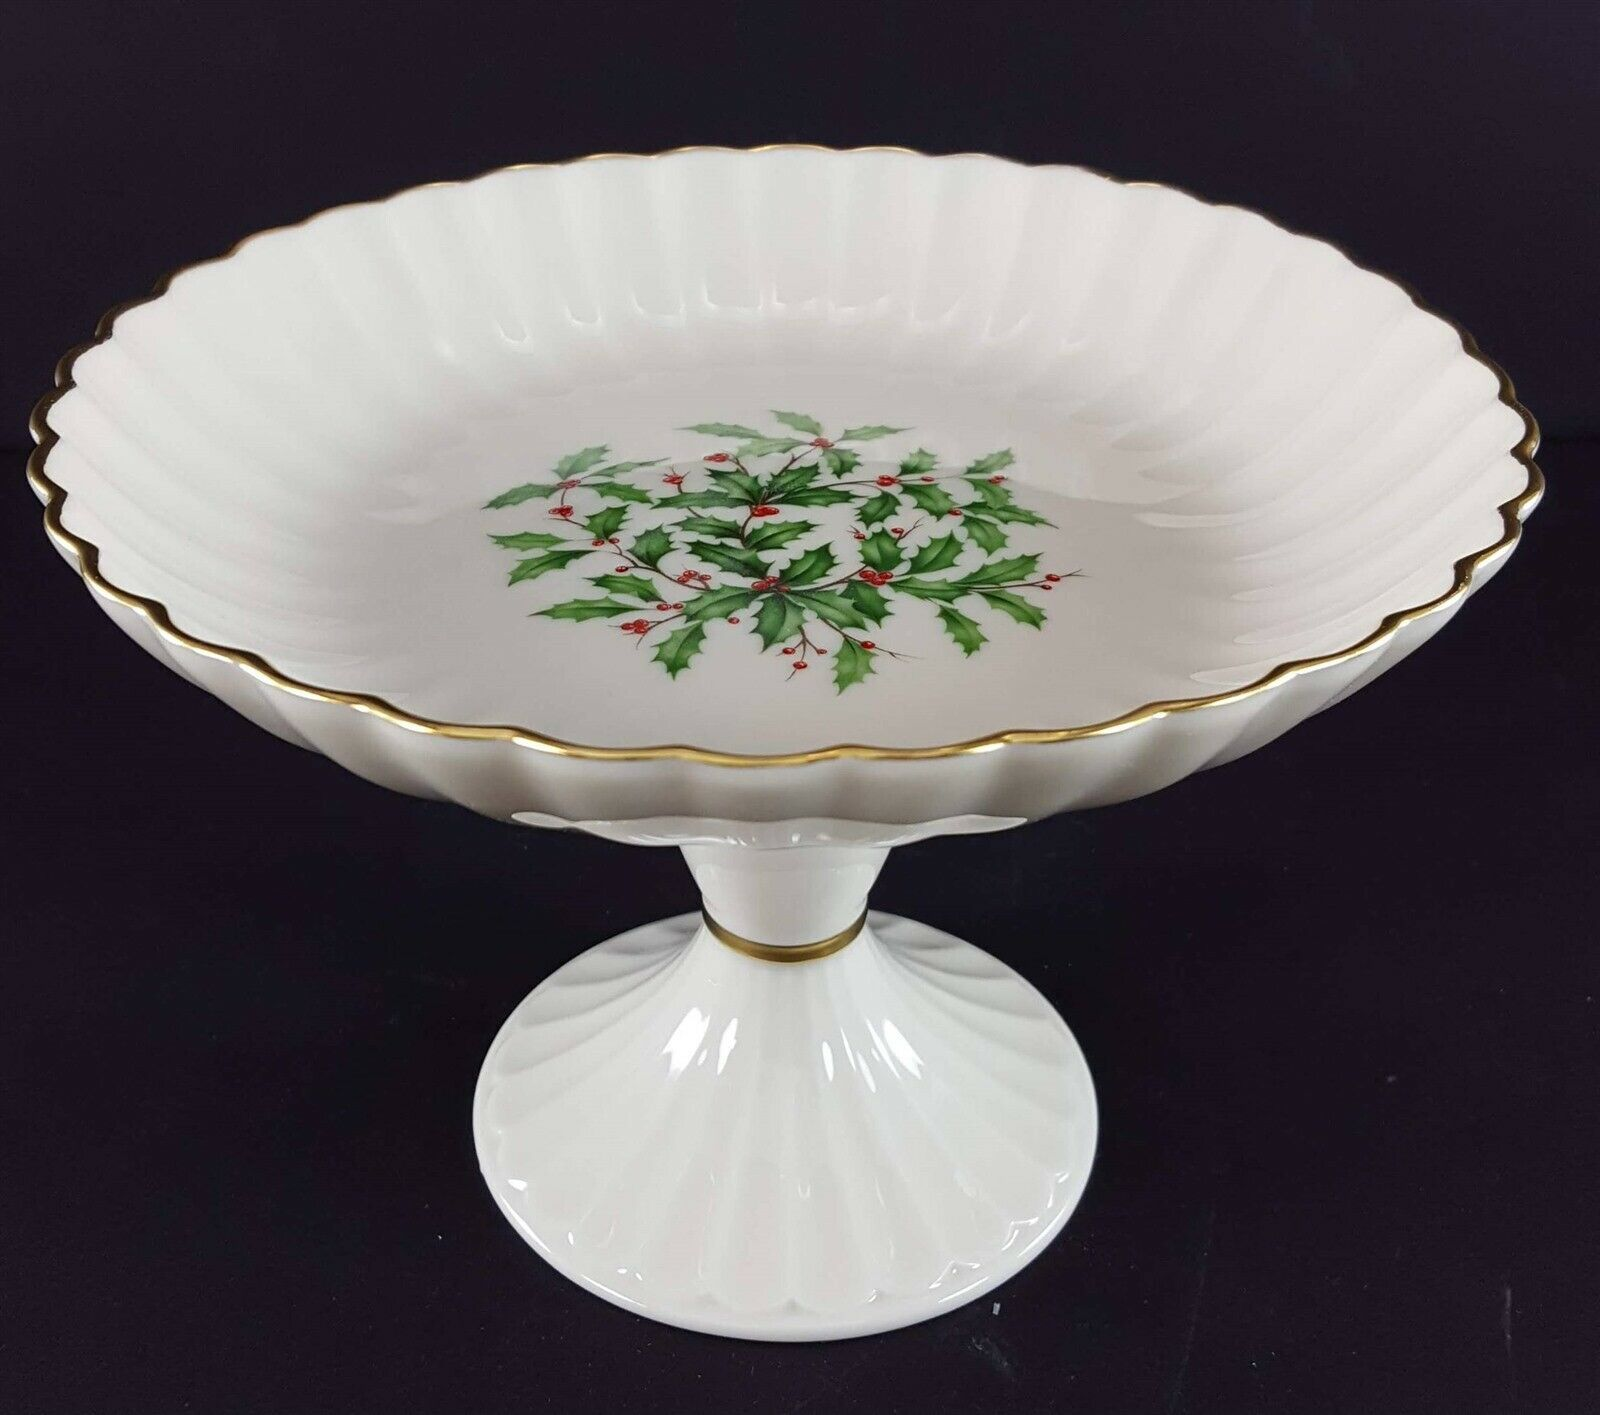 "LENOX China Holiday Dimension Round Compote Pedestal 5"" x 7-1/4"" Dinnerware"